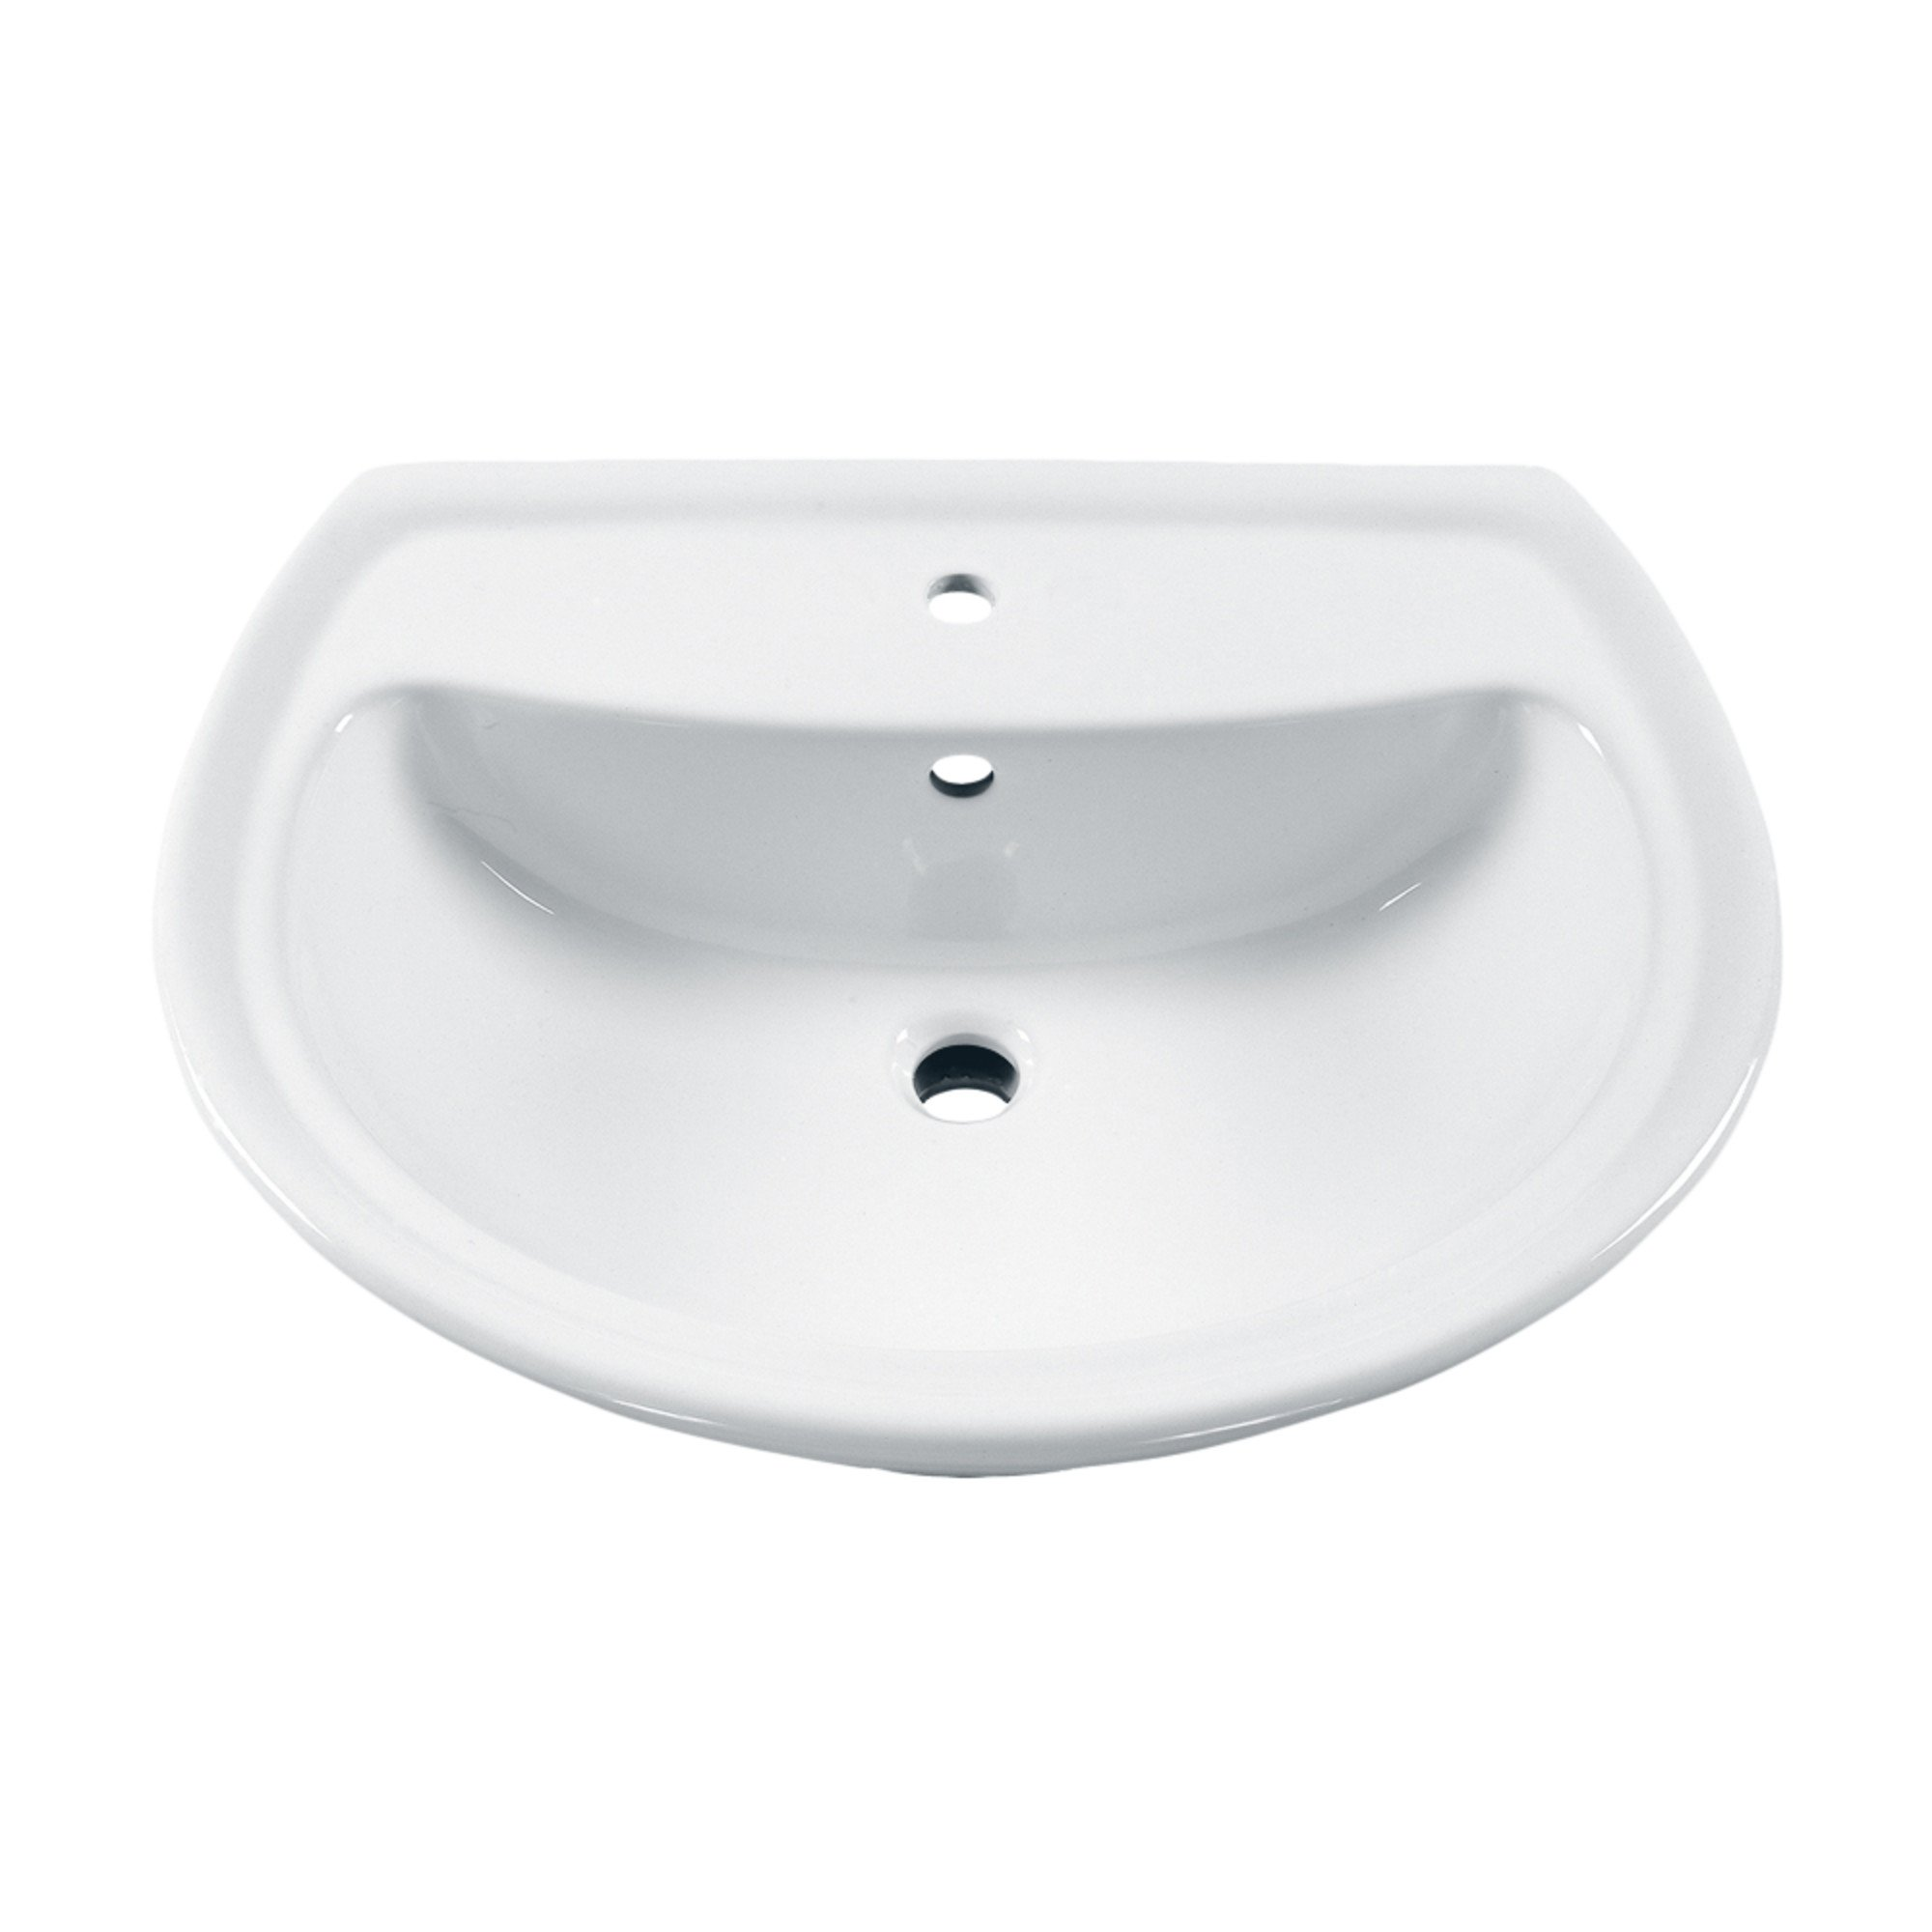 American Standard 0236.001.020 Cadet Pedestal Sink Basin with Center Faucet Hole Only, White by American Standard